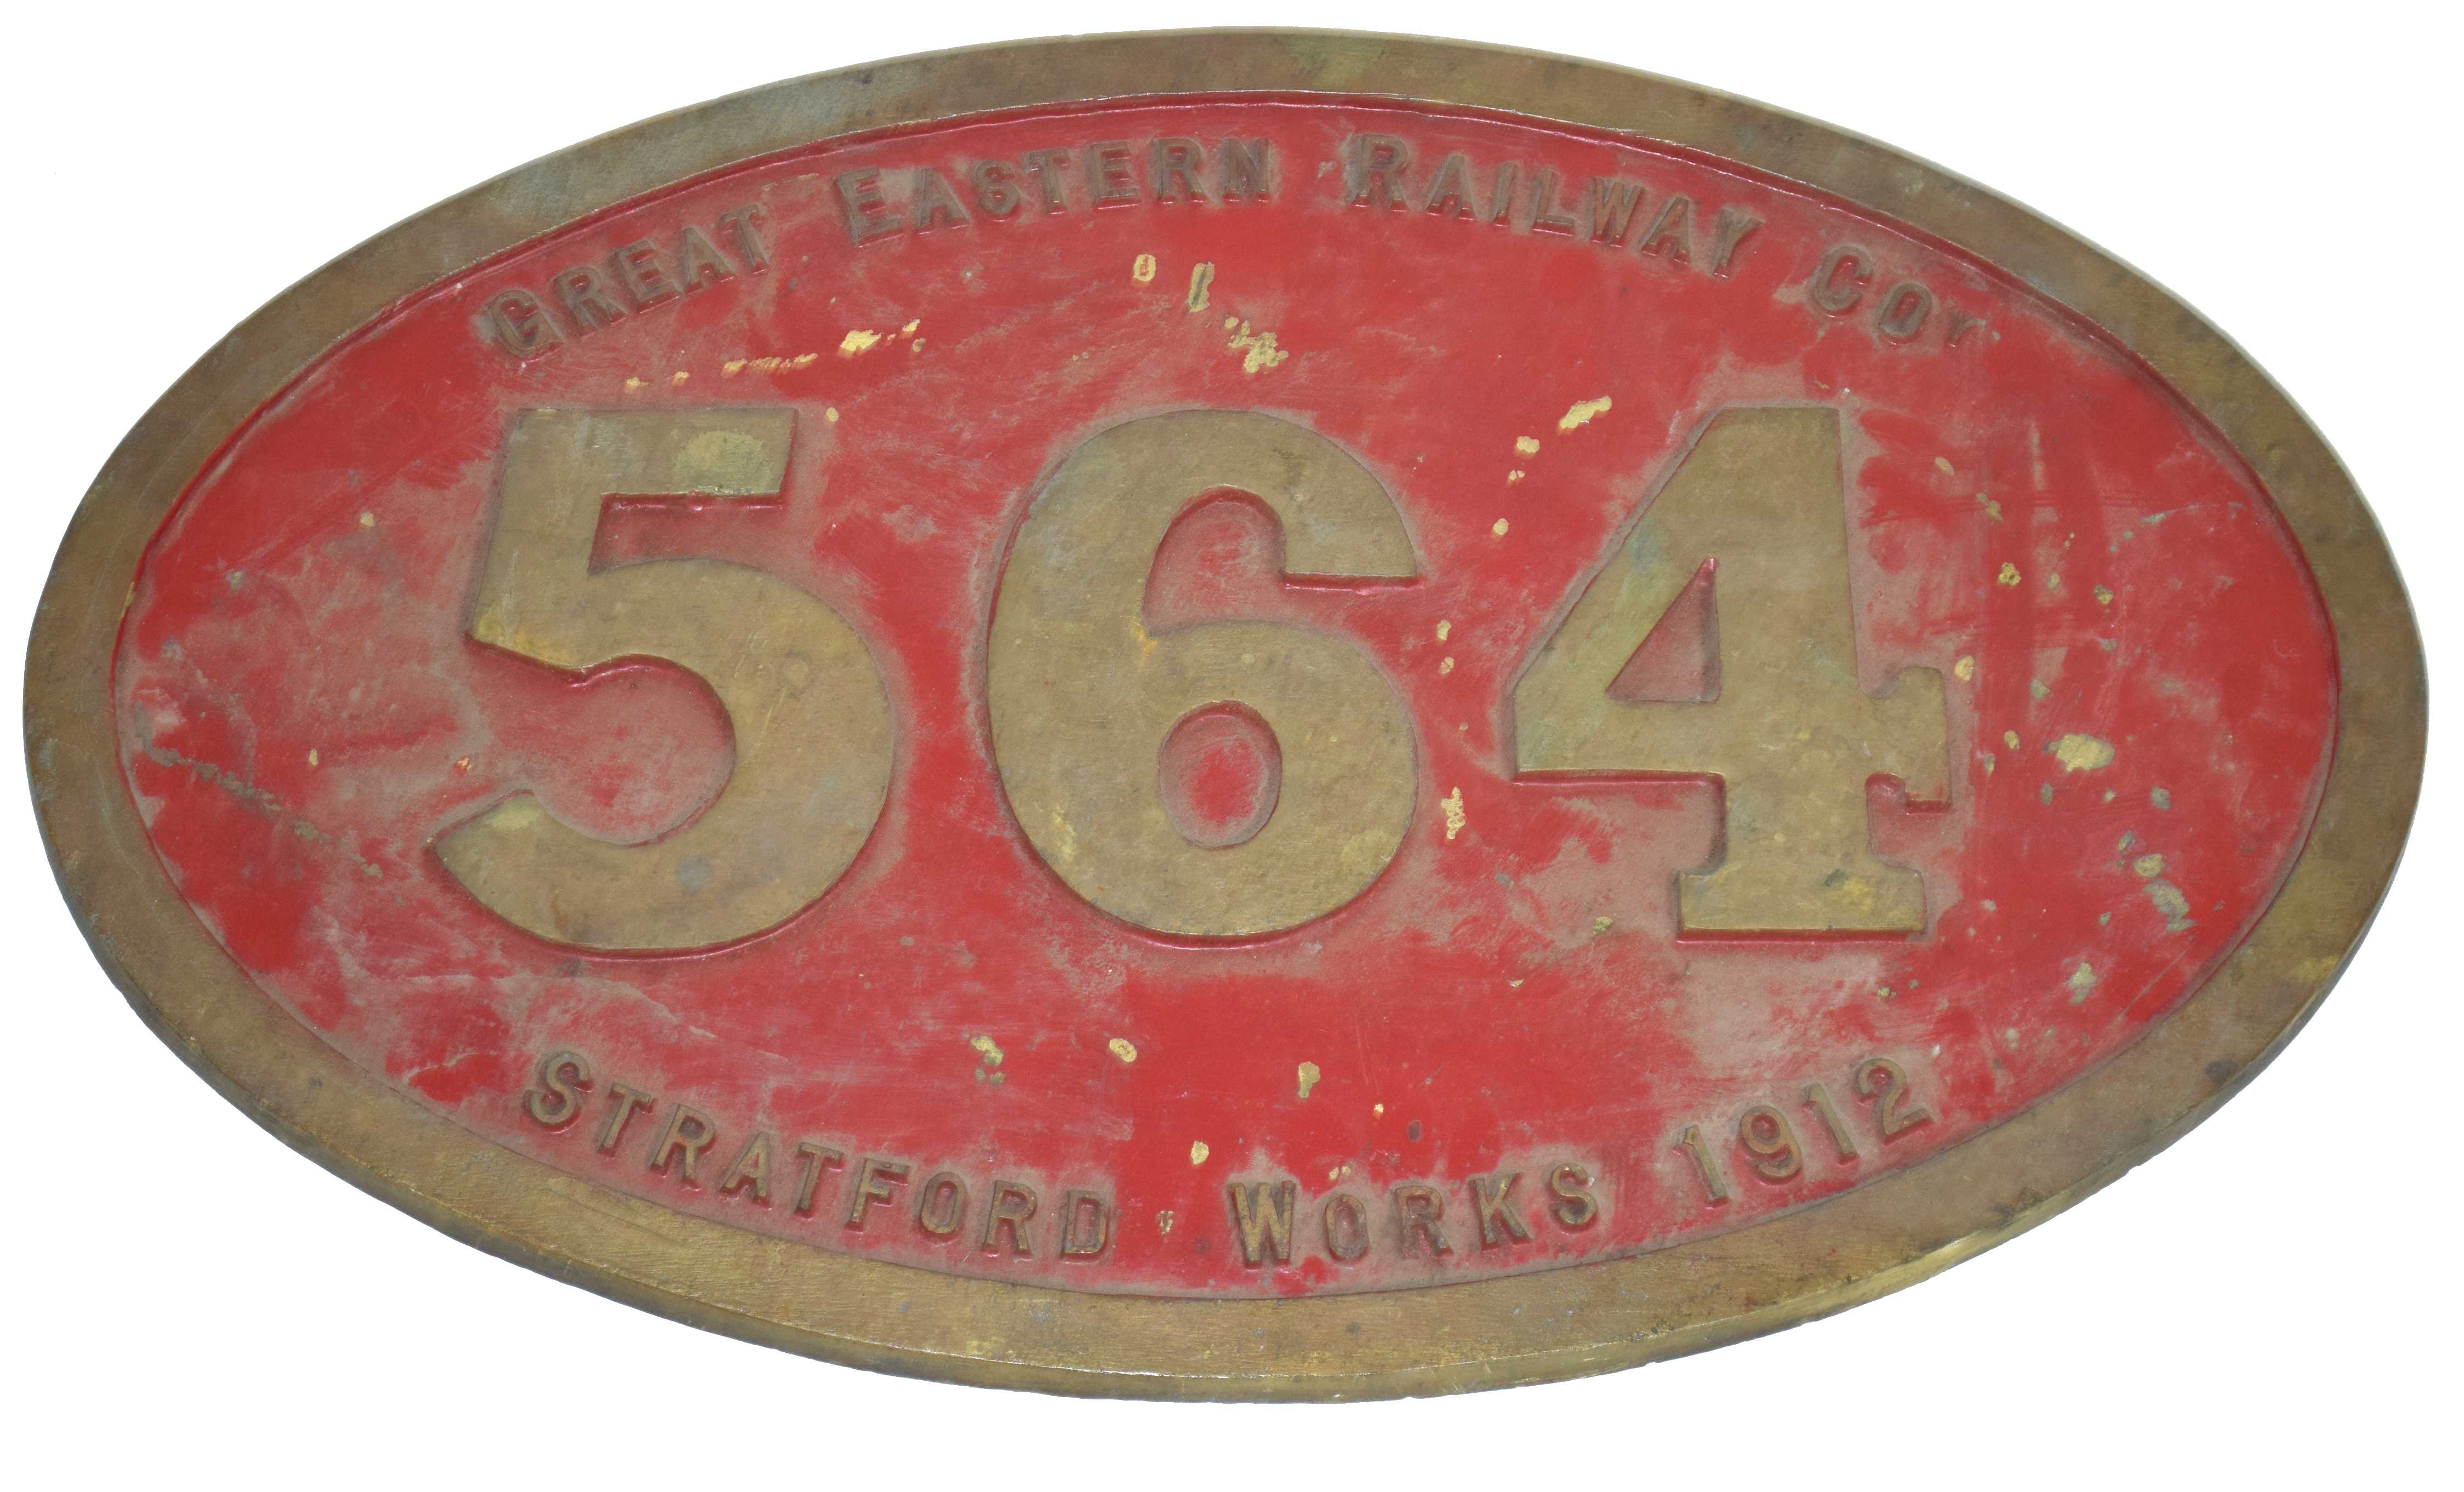 Railway interest engine plaque for Great Eastern Railway Co, Stratford Works 1912, No 564 bronze - Image 2 of 2